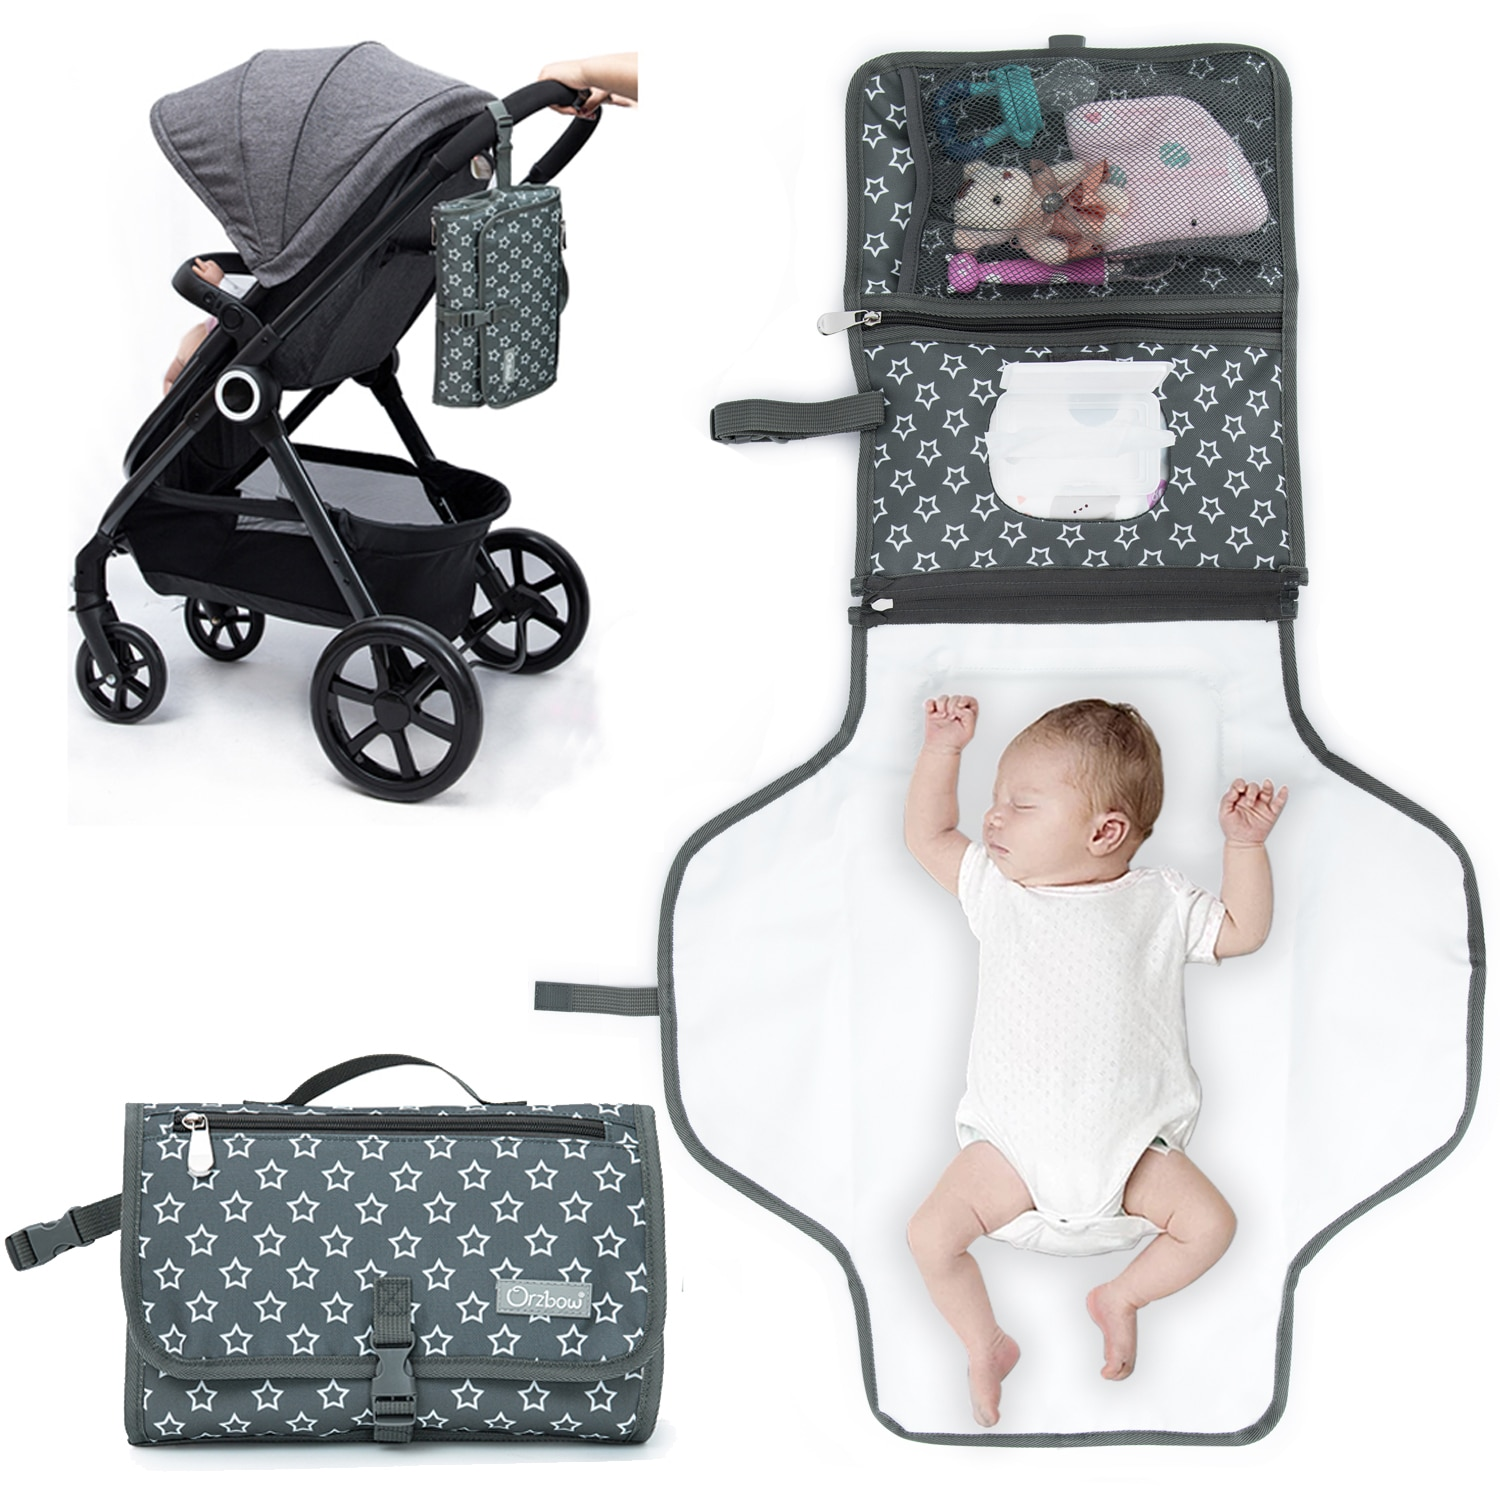 Orzbow 2 In 1 Baby Diaper Changing Mat Mommy Wet Bags Travel Portable Newborn Baby Mattress Diaper Changing Pad Waterproof Clean